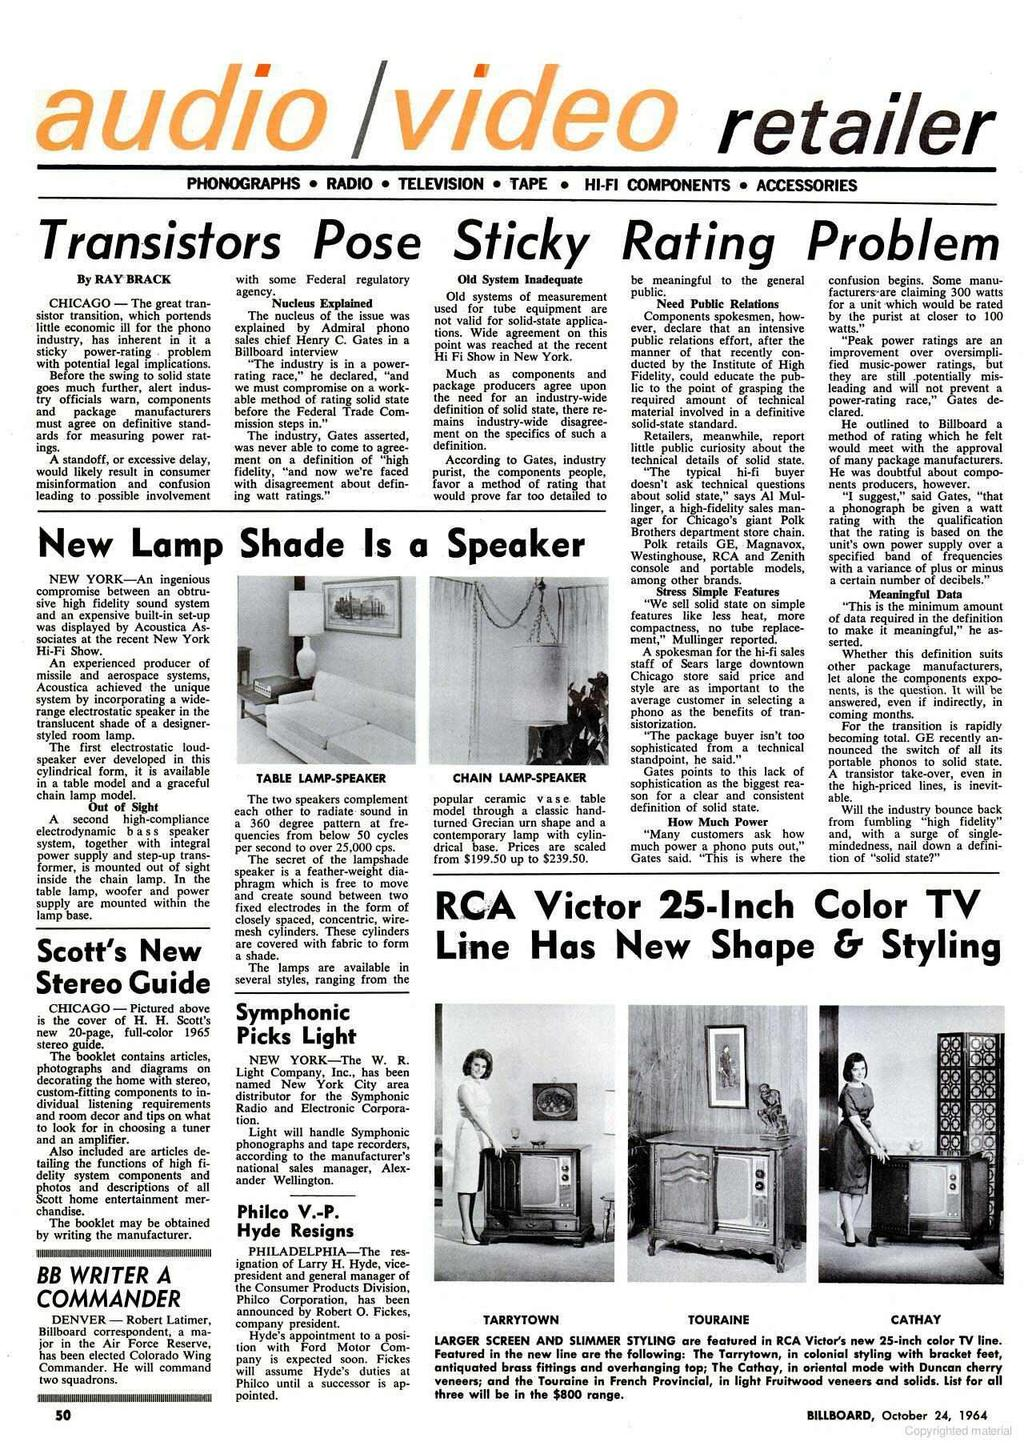 Tradesters Are Already Re Decca Records Firm Hold On The Original 1966 Mustang Philco Radio Wiring Diagram L Retailer Phonographs Television Tape Hi Fi Components Accessories Transistors Pose Sticky Rating